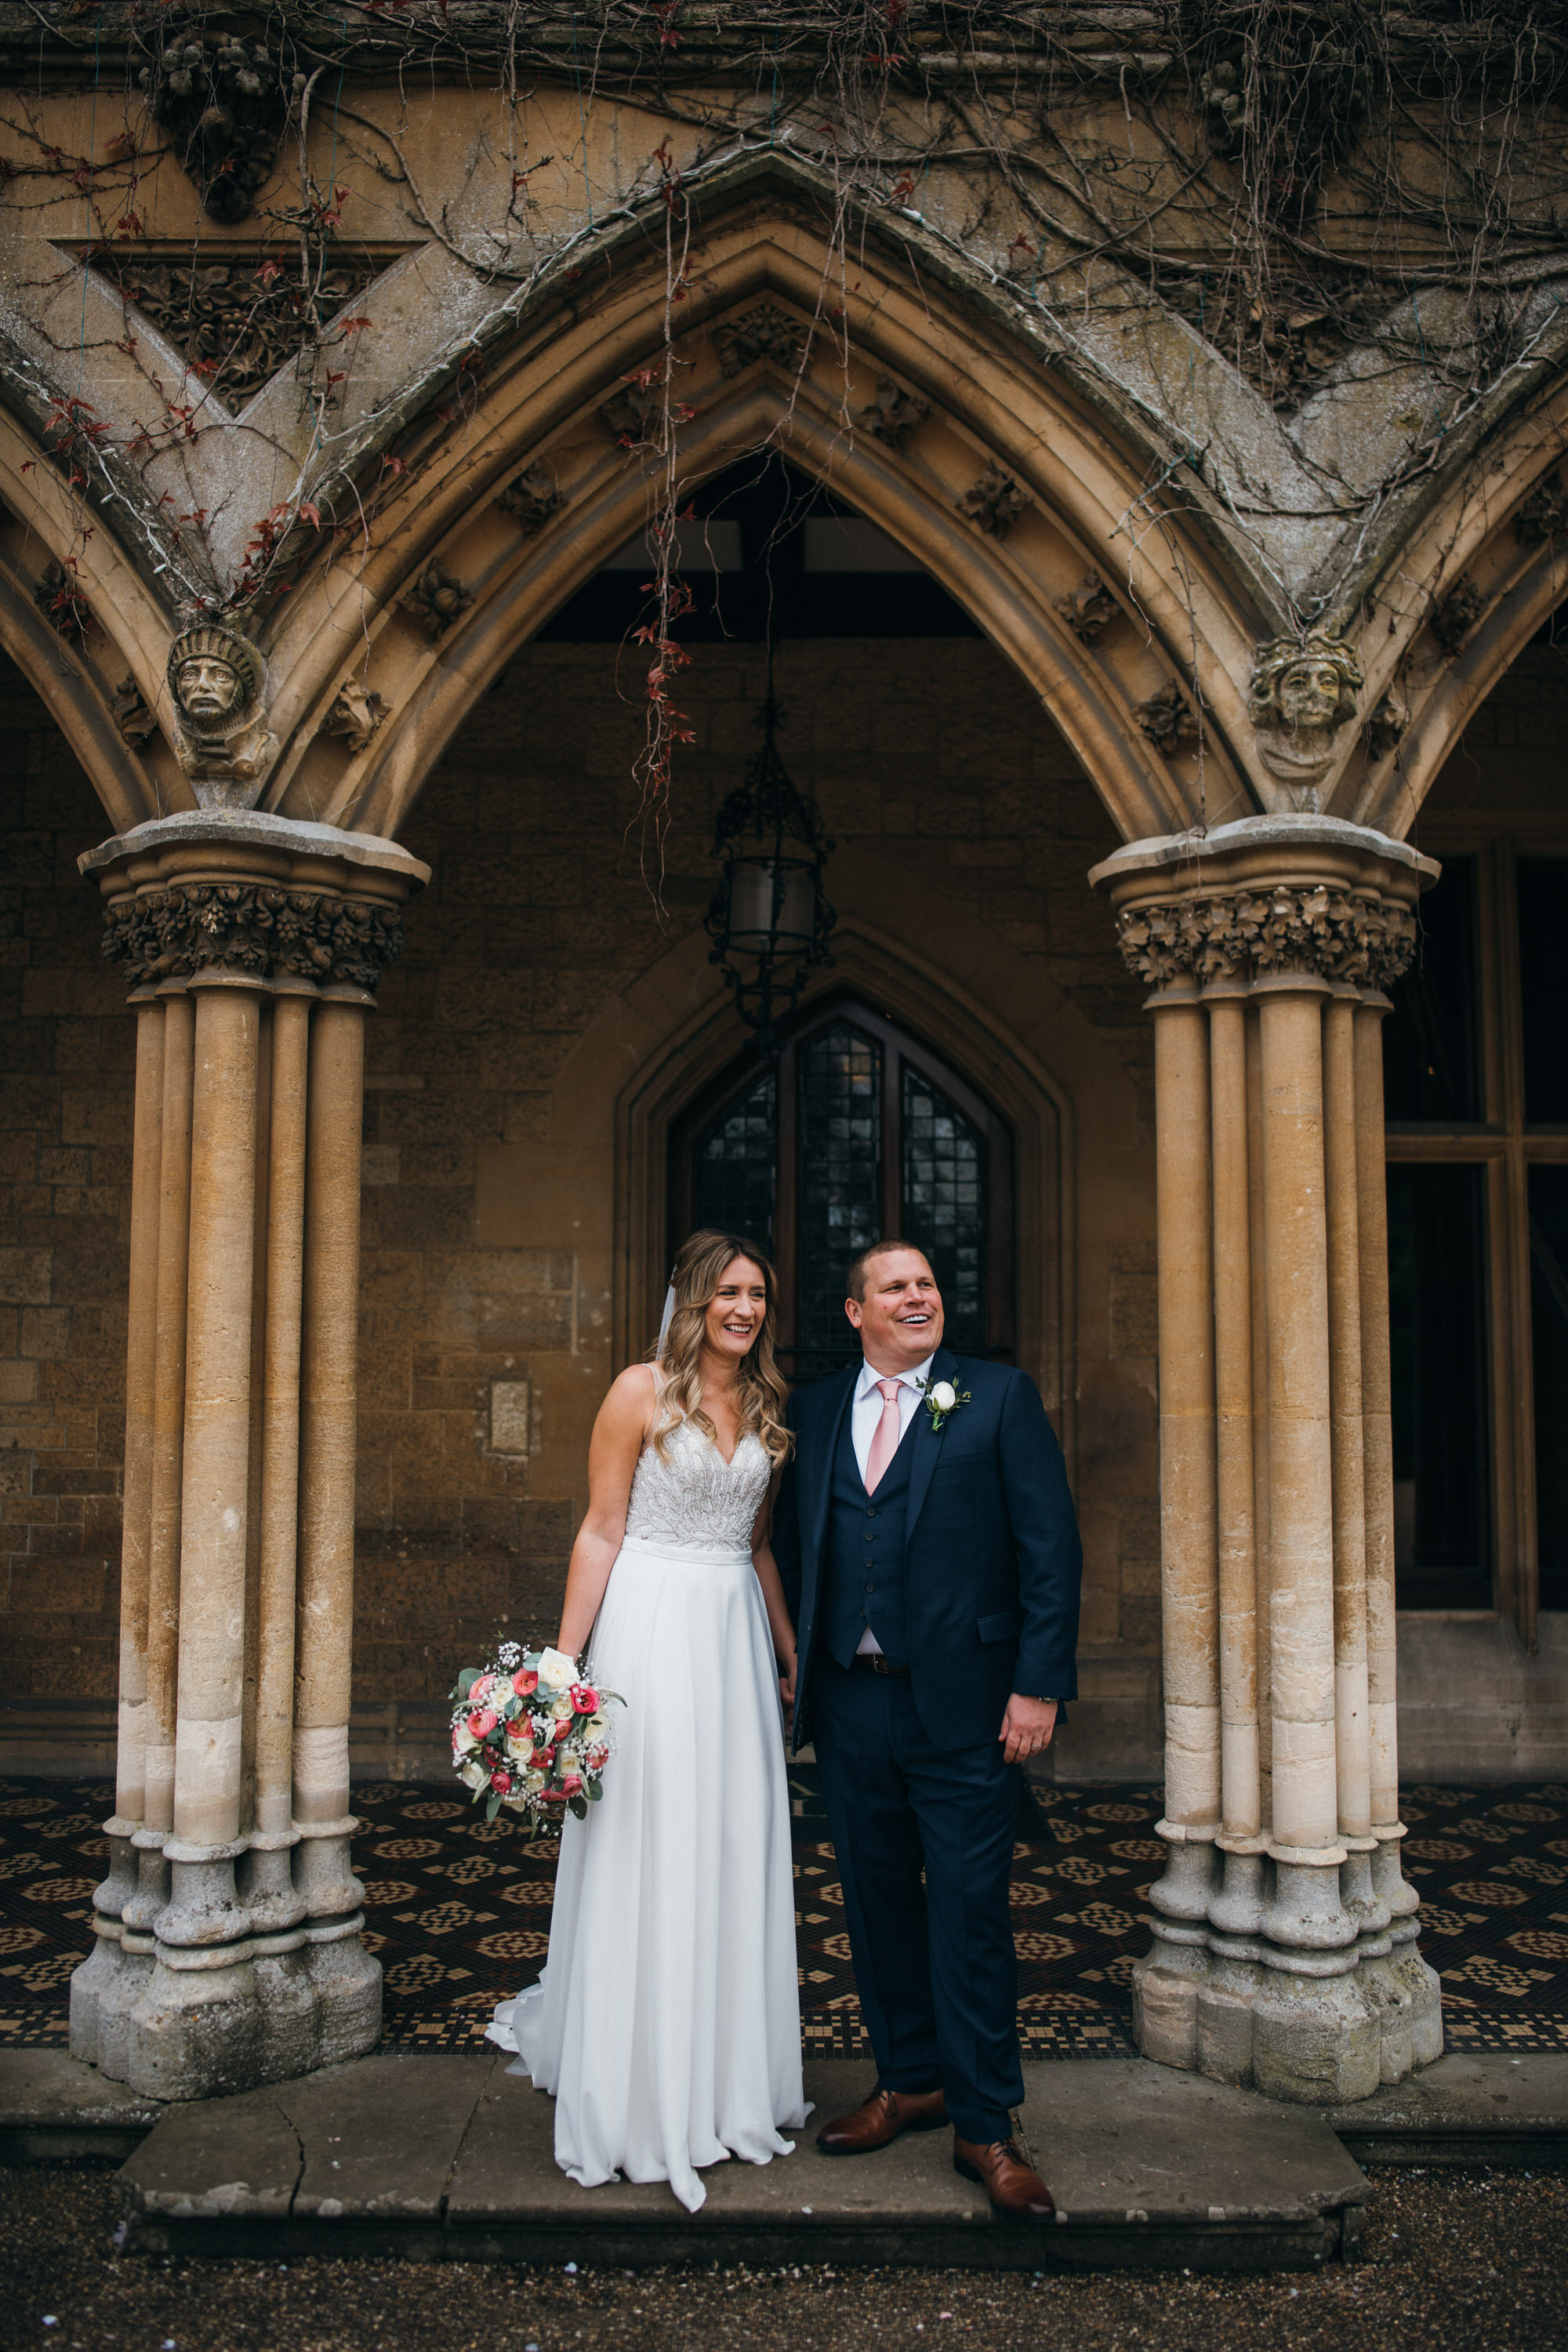 Manor by the lake wedding photographer 32